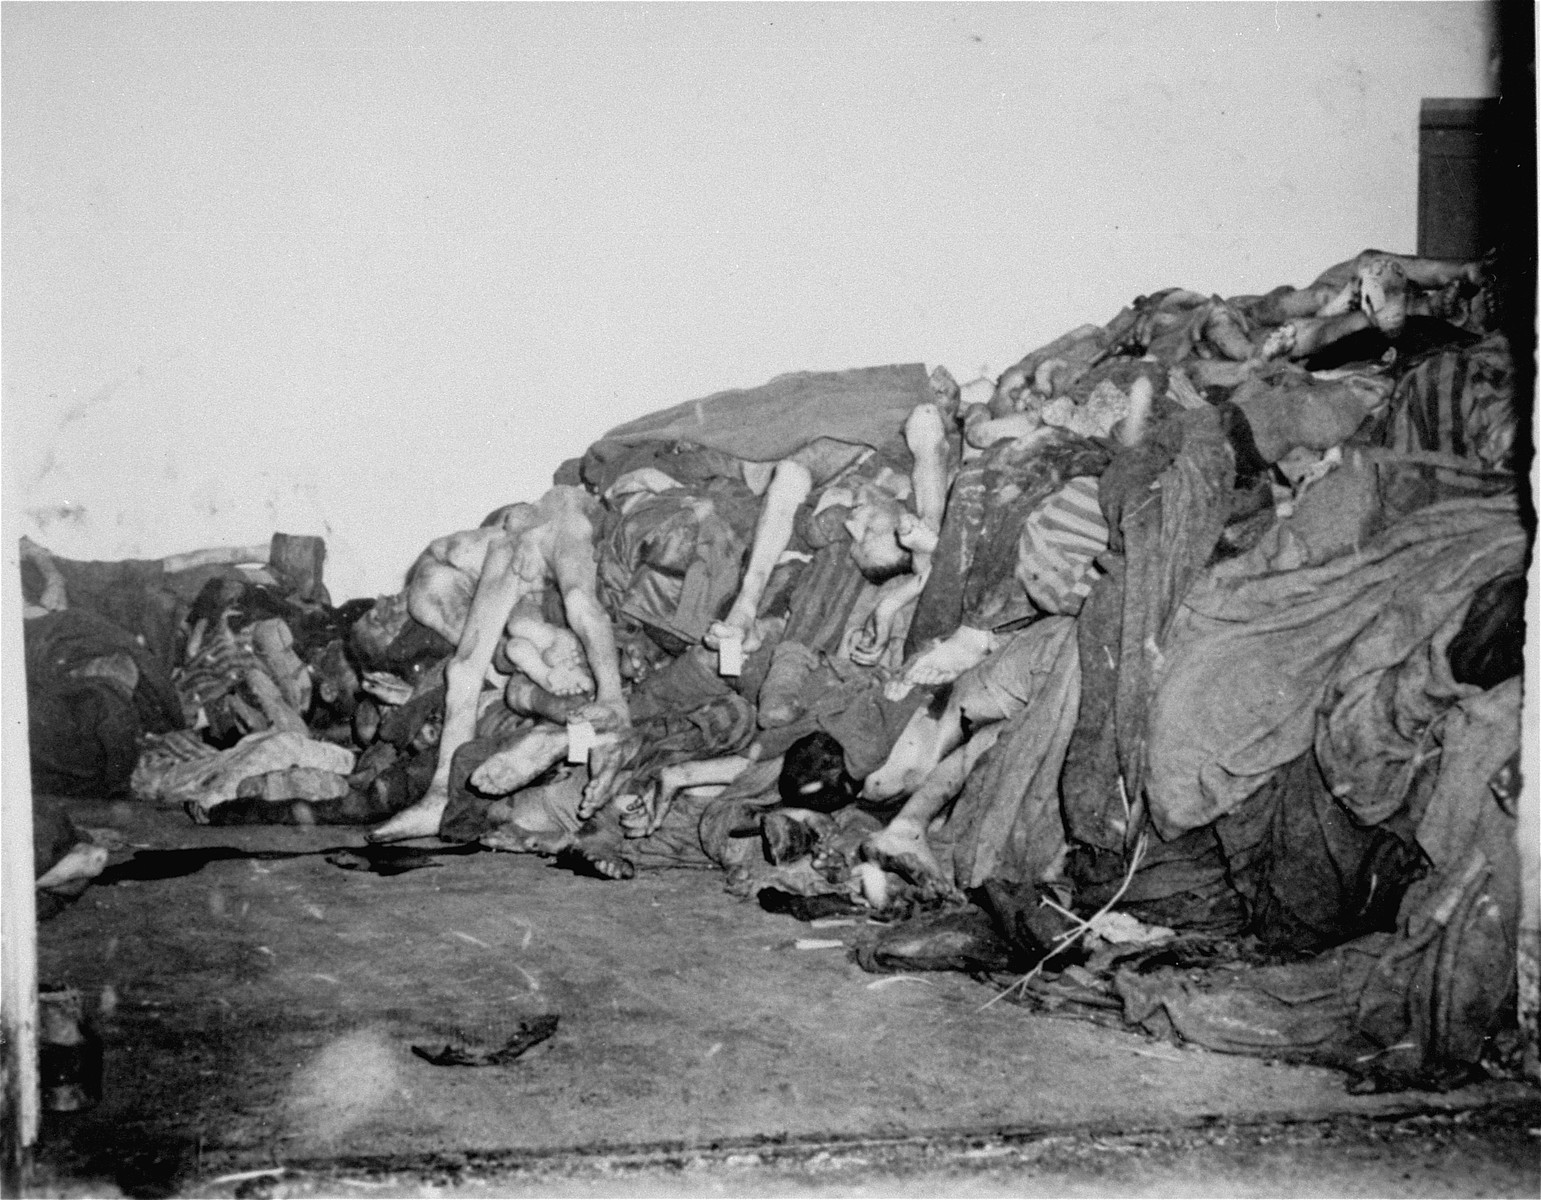 Corpses piled in the mortuary below the crematorium.  These rooms became so full of corpses that the SS staff and survivors began to pile corpses behind the crematorium, where they were found by U.S. troops during the liberation of the camp.